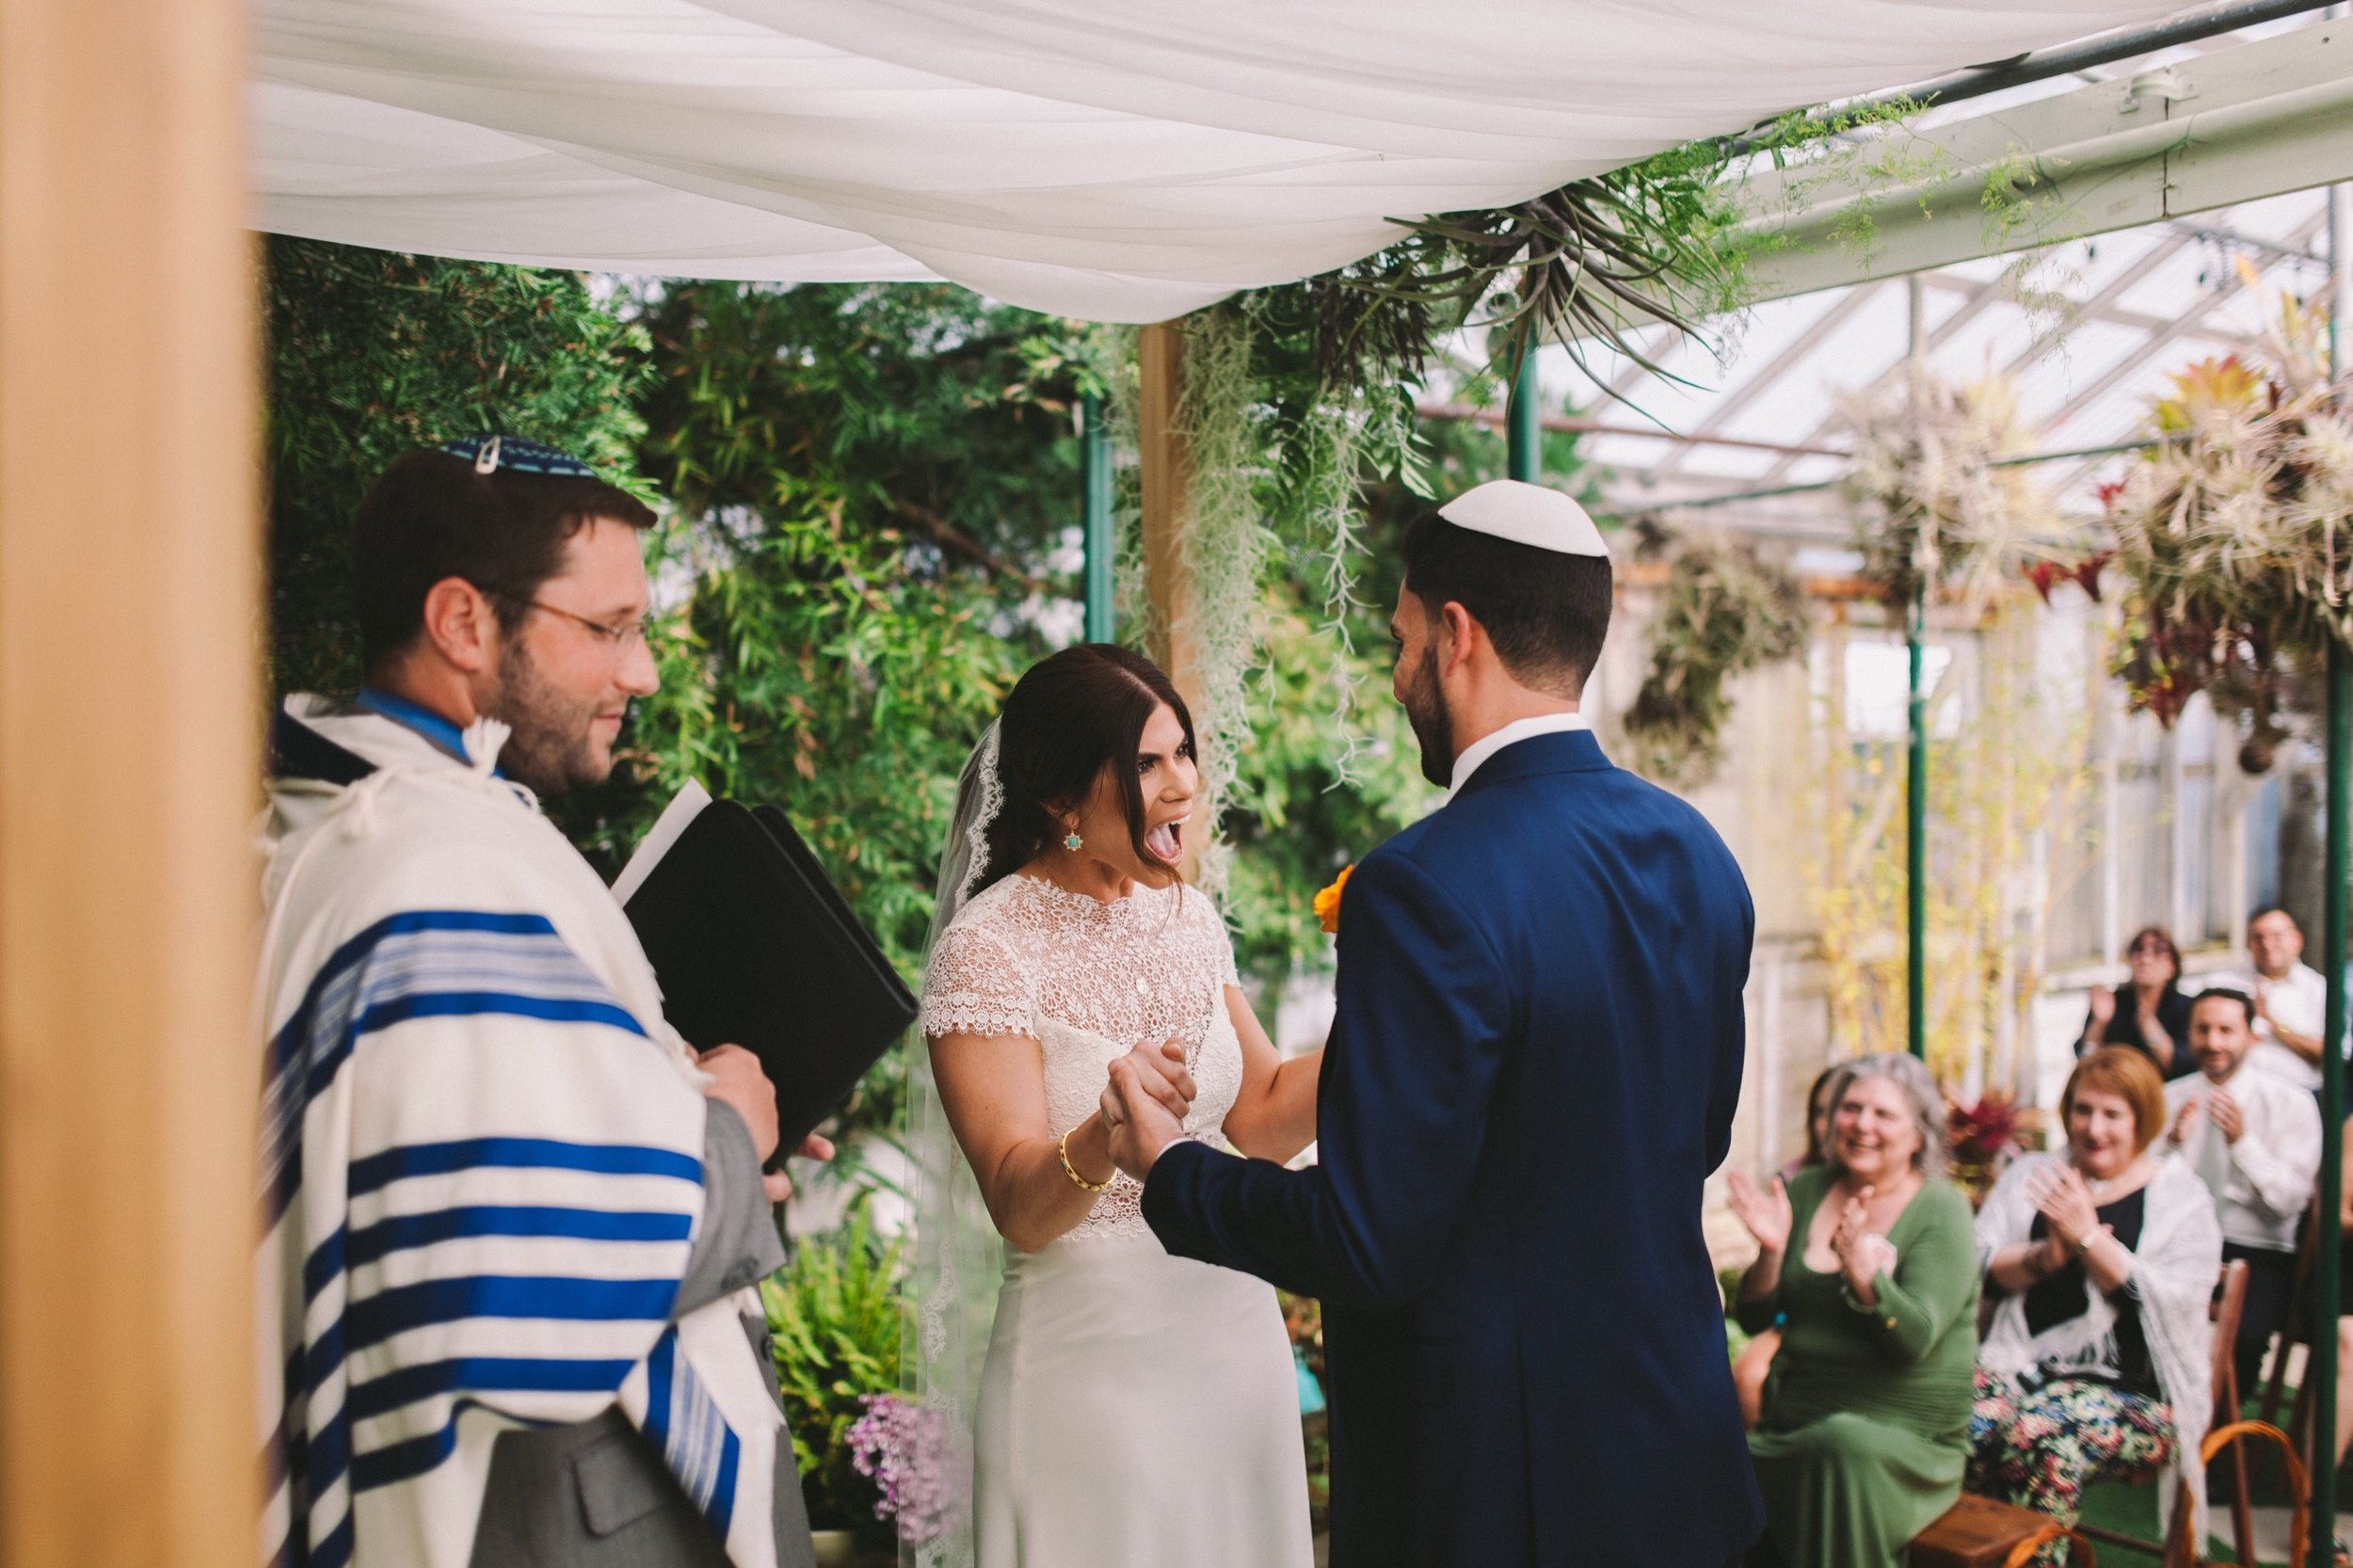 Bride & Groom Under Chuppah at Shelldance Orchid Gardens Pacifica